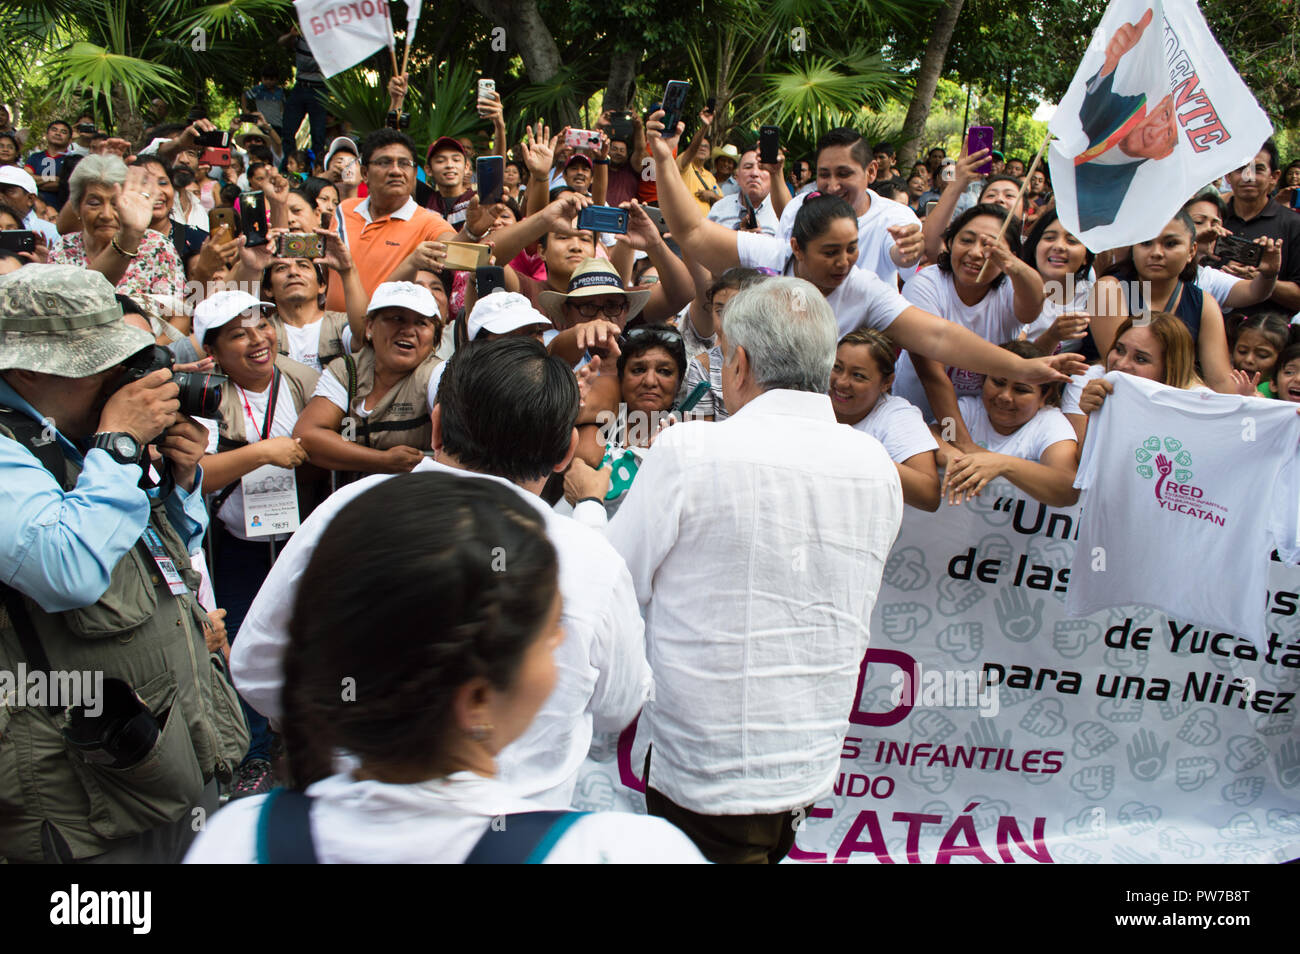 President-elect of Mexico, Andres Manuel Lopez Obrador during his visit to Merida, Yucatan, October 2018. - Stock Image